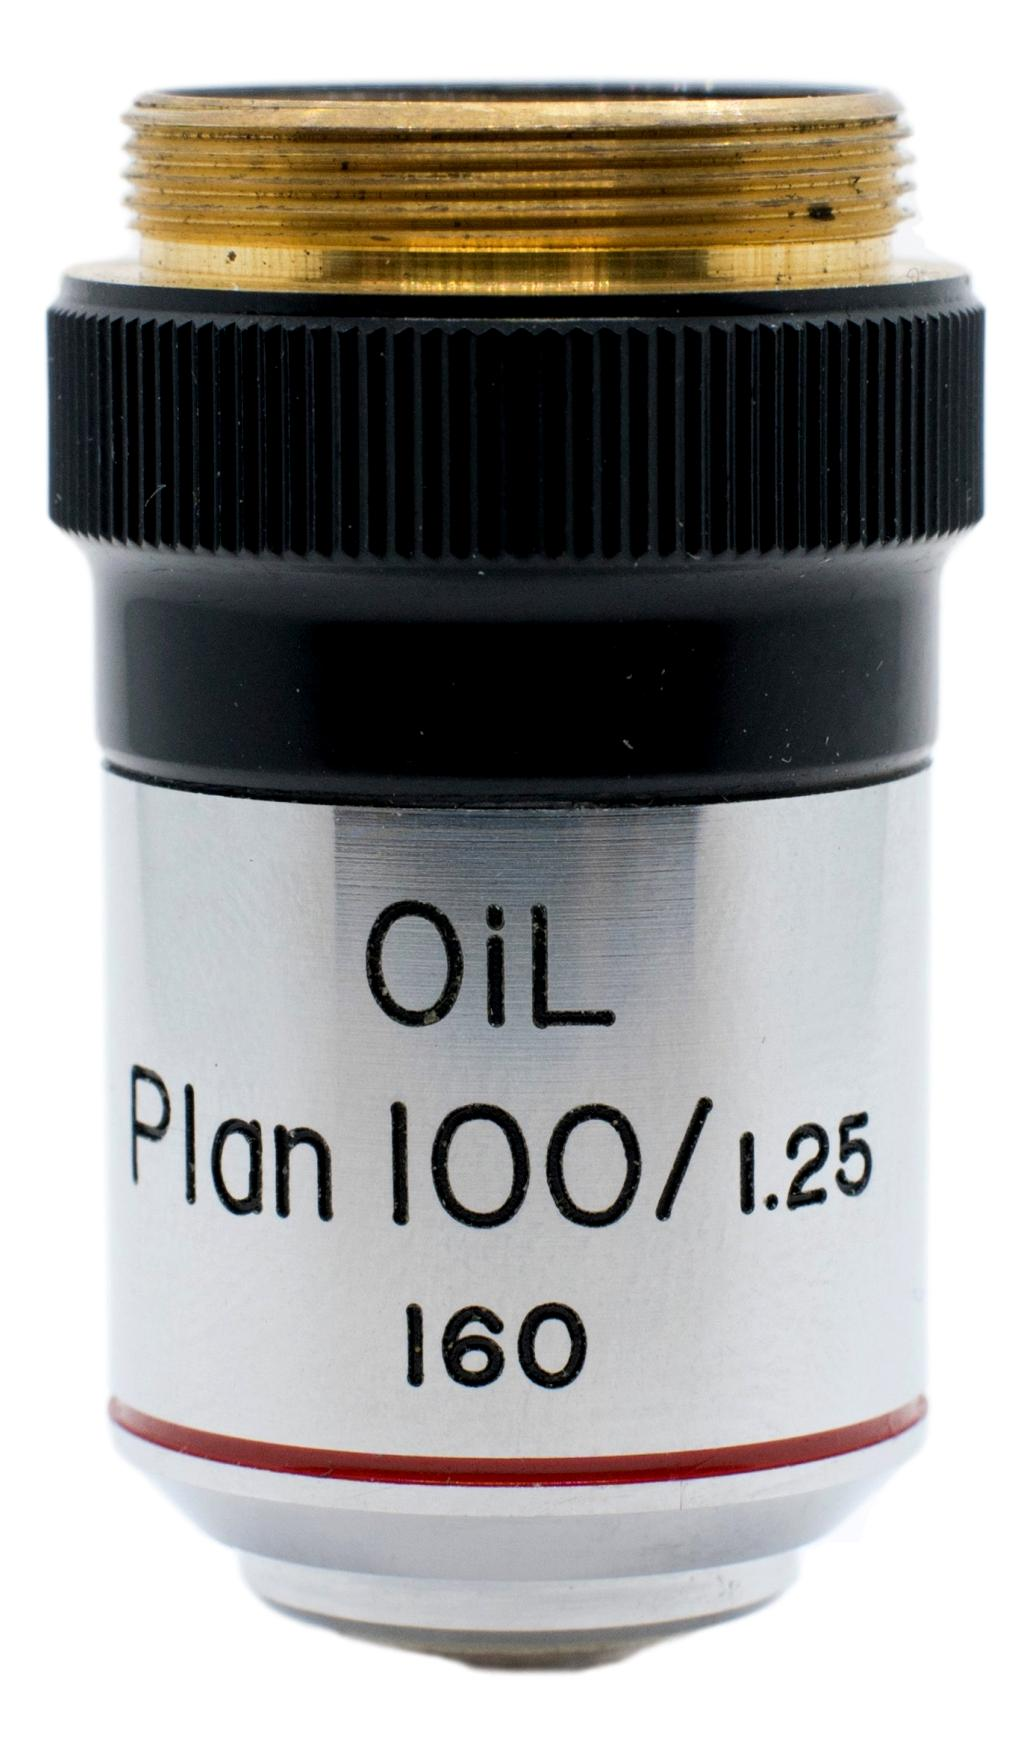 Bausch & Lomb / B&L 100x Oil Plan Objective